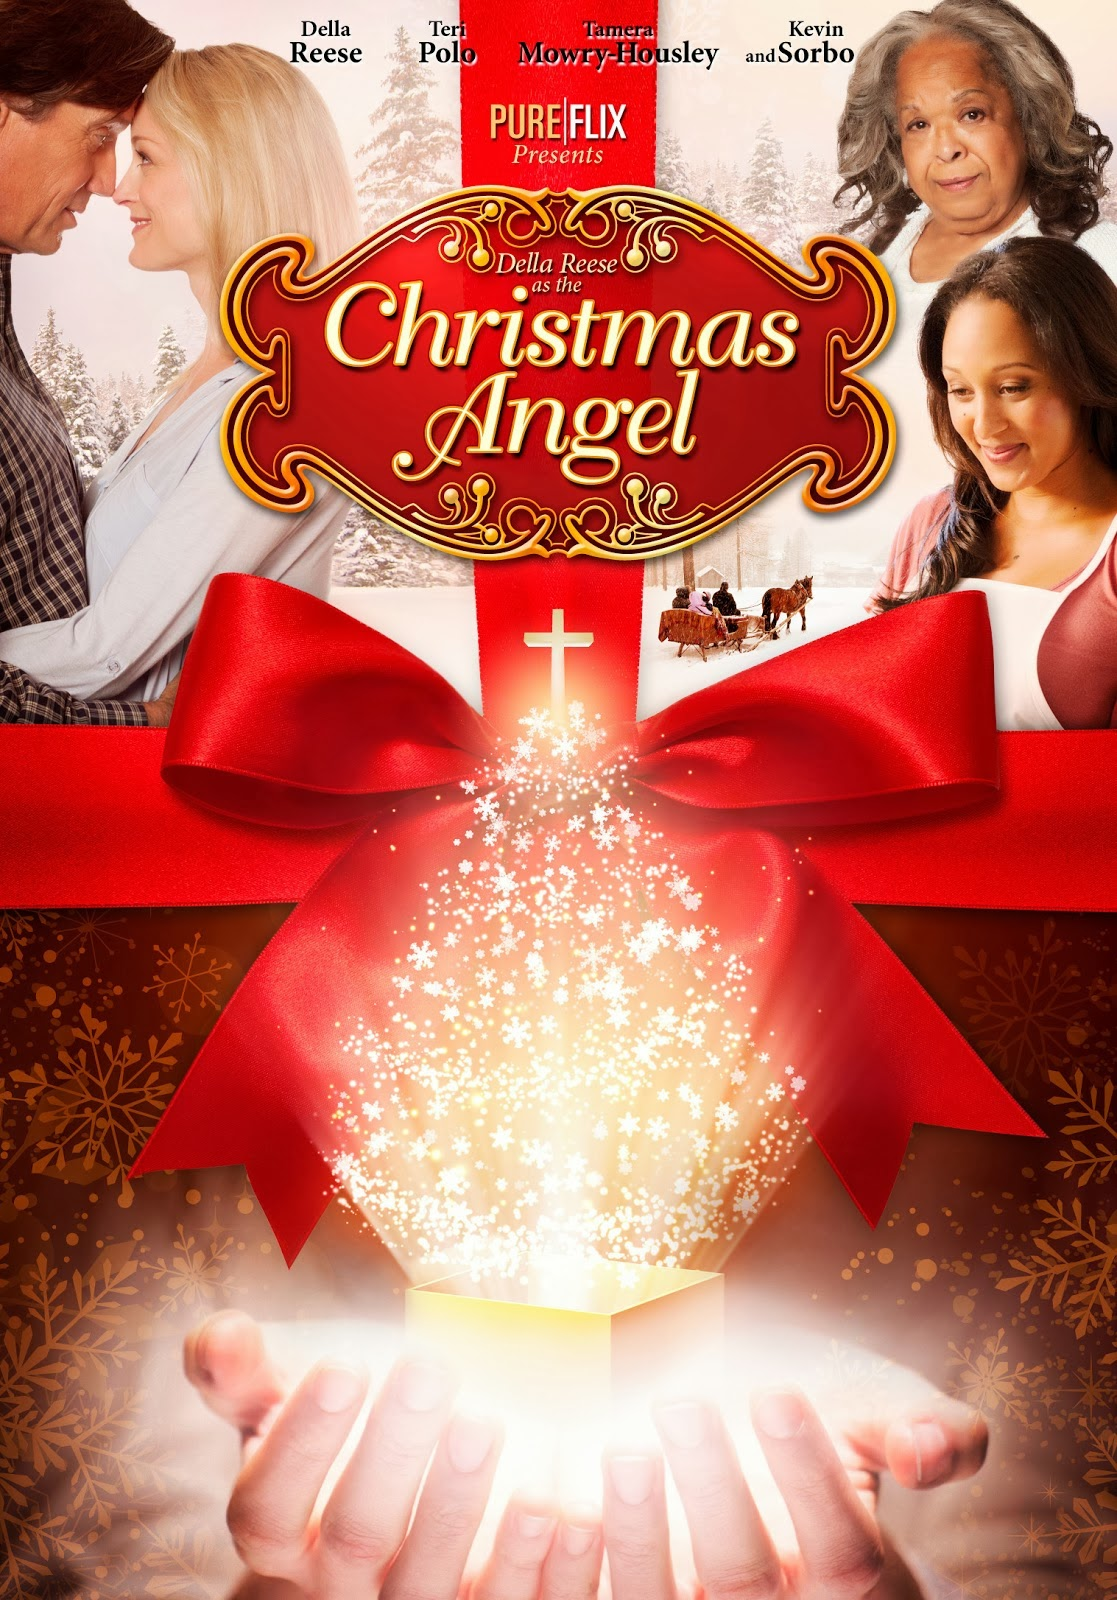 christmas movies angel holiday dvd tv films true schedule door town belle come reese wish start snow